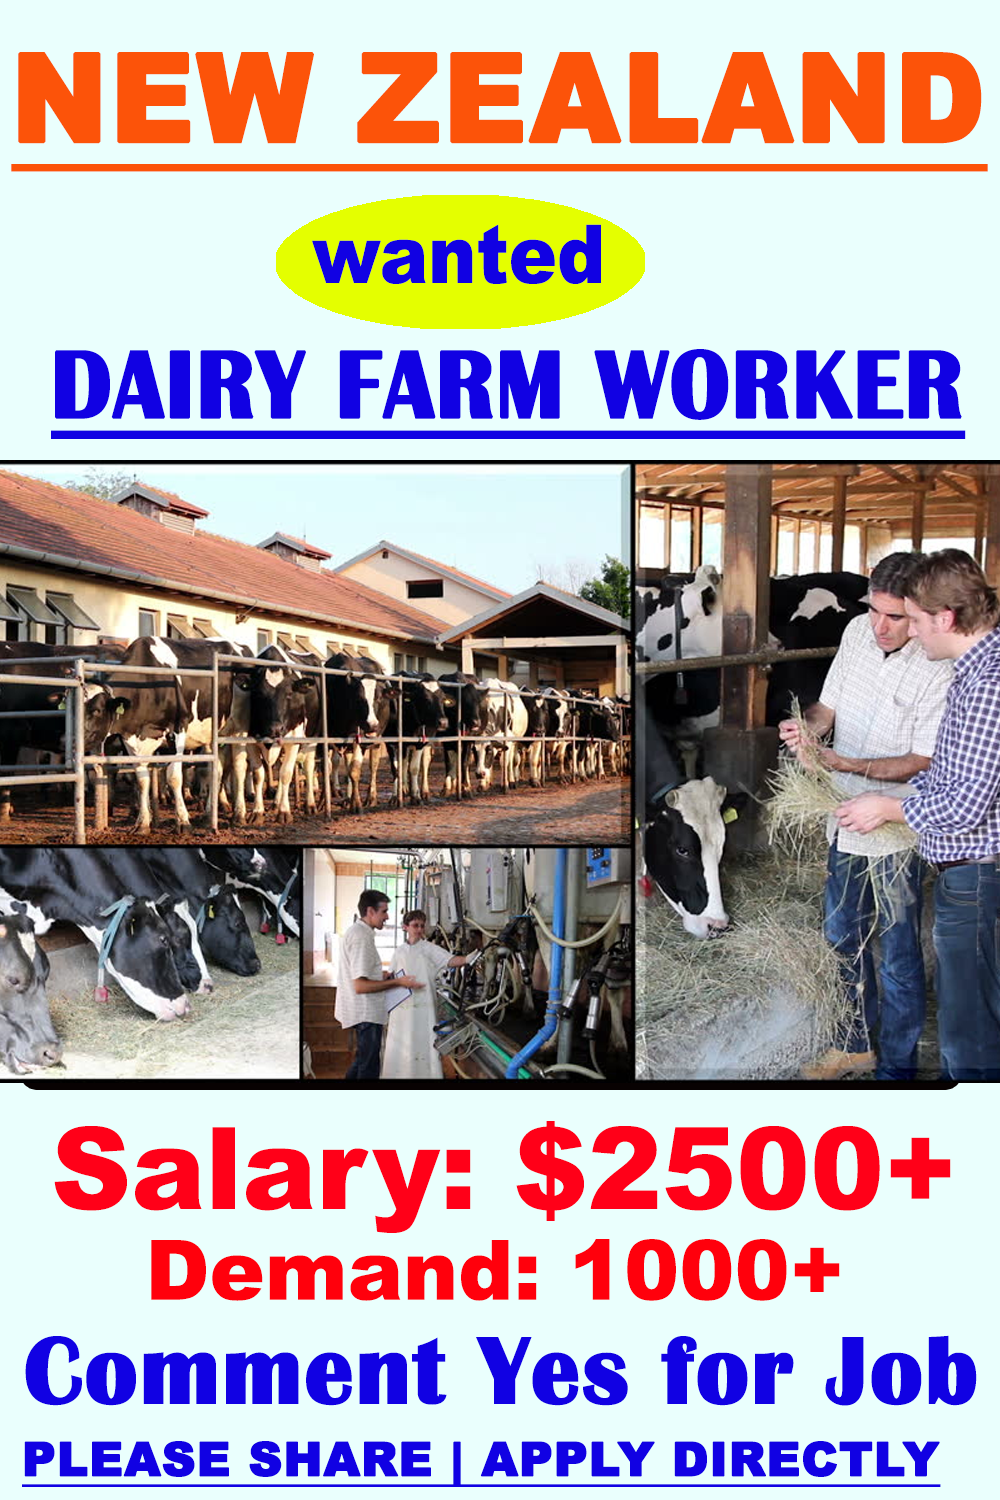 Dairy Farm Workers in New Zealand